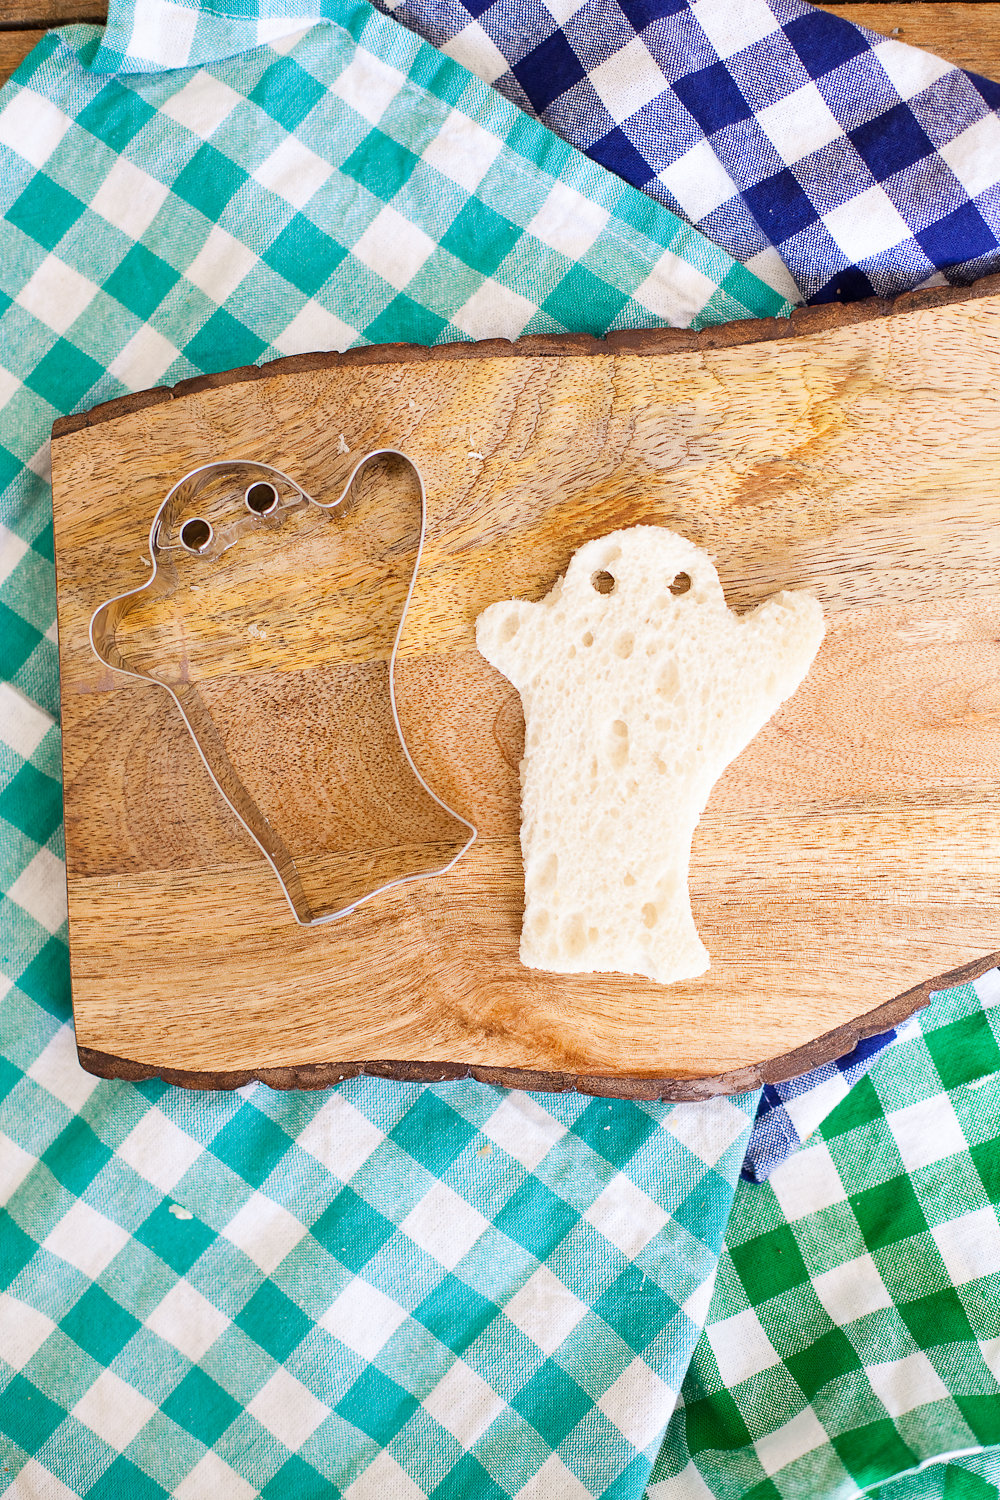 A slice of bread cut out into a ghost shape on a board